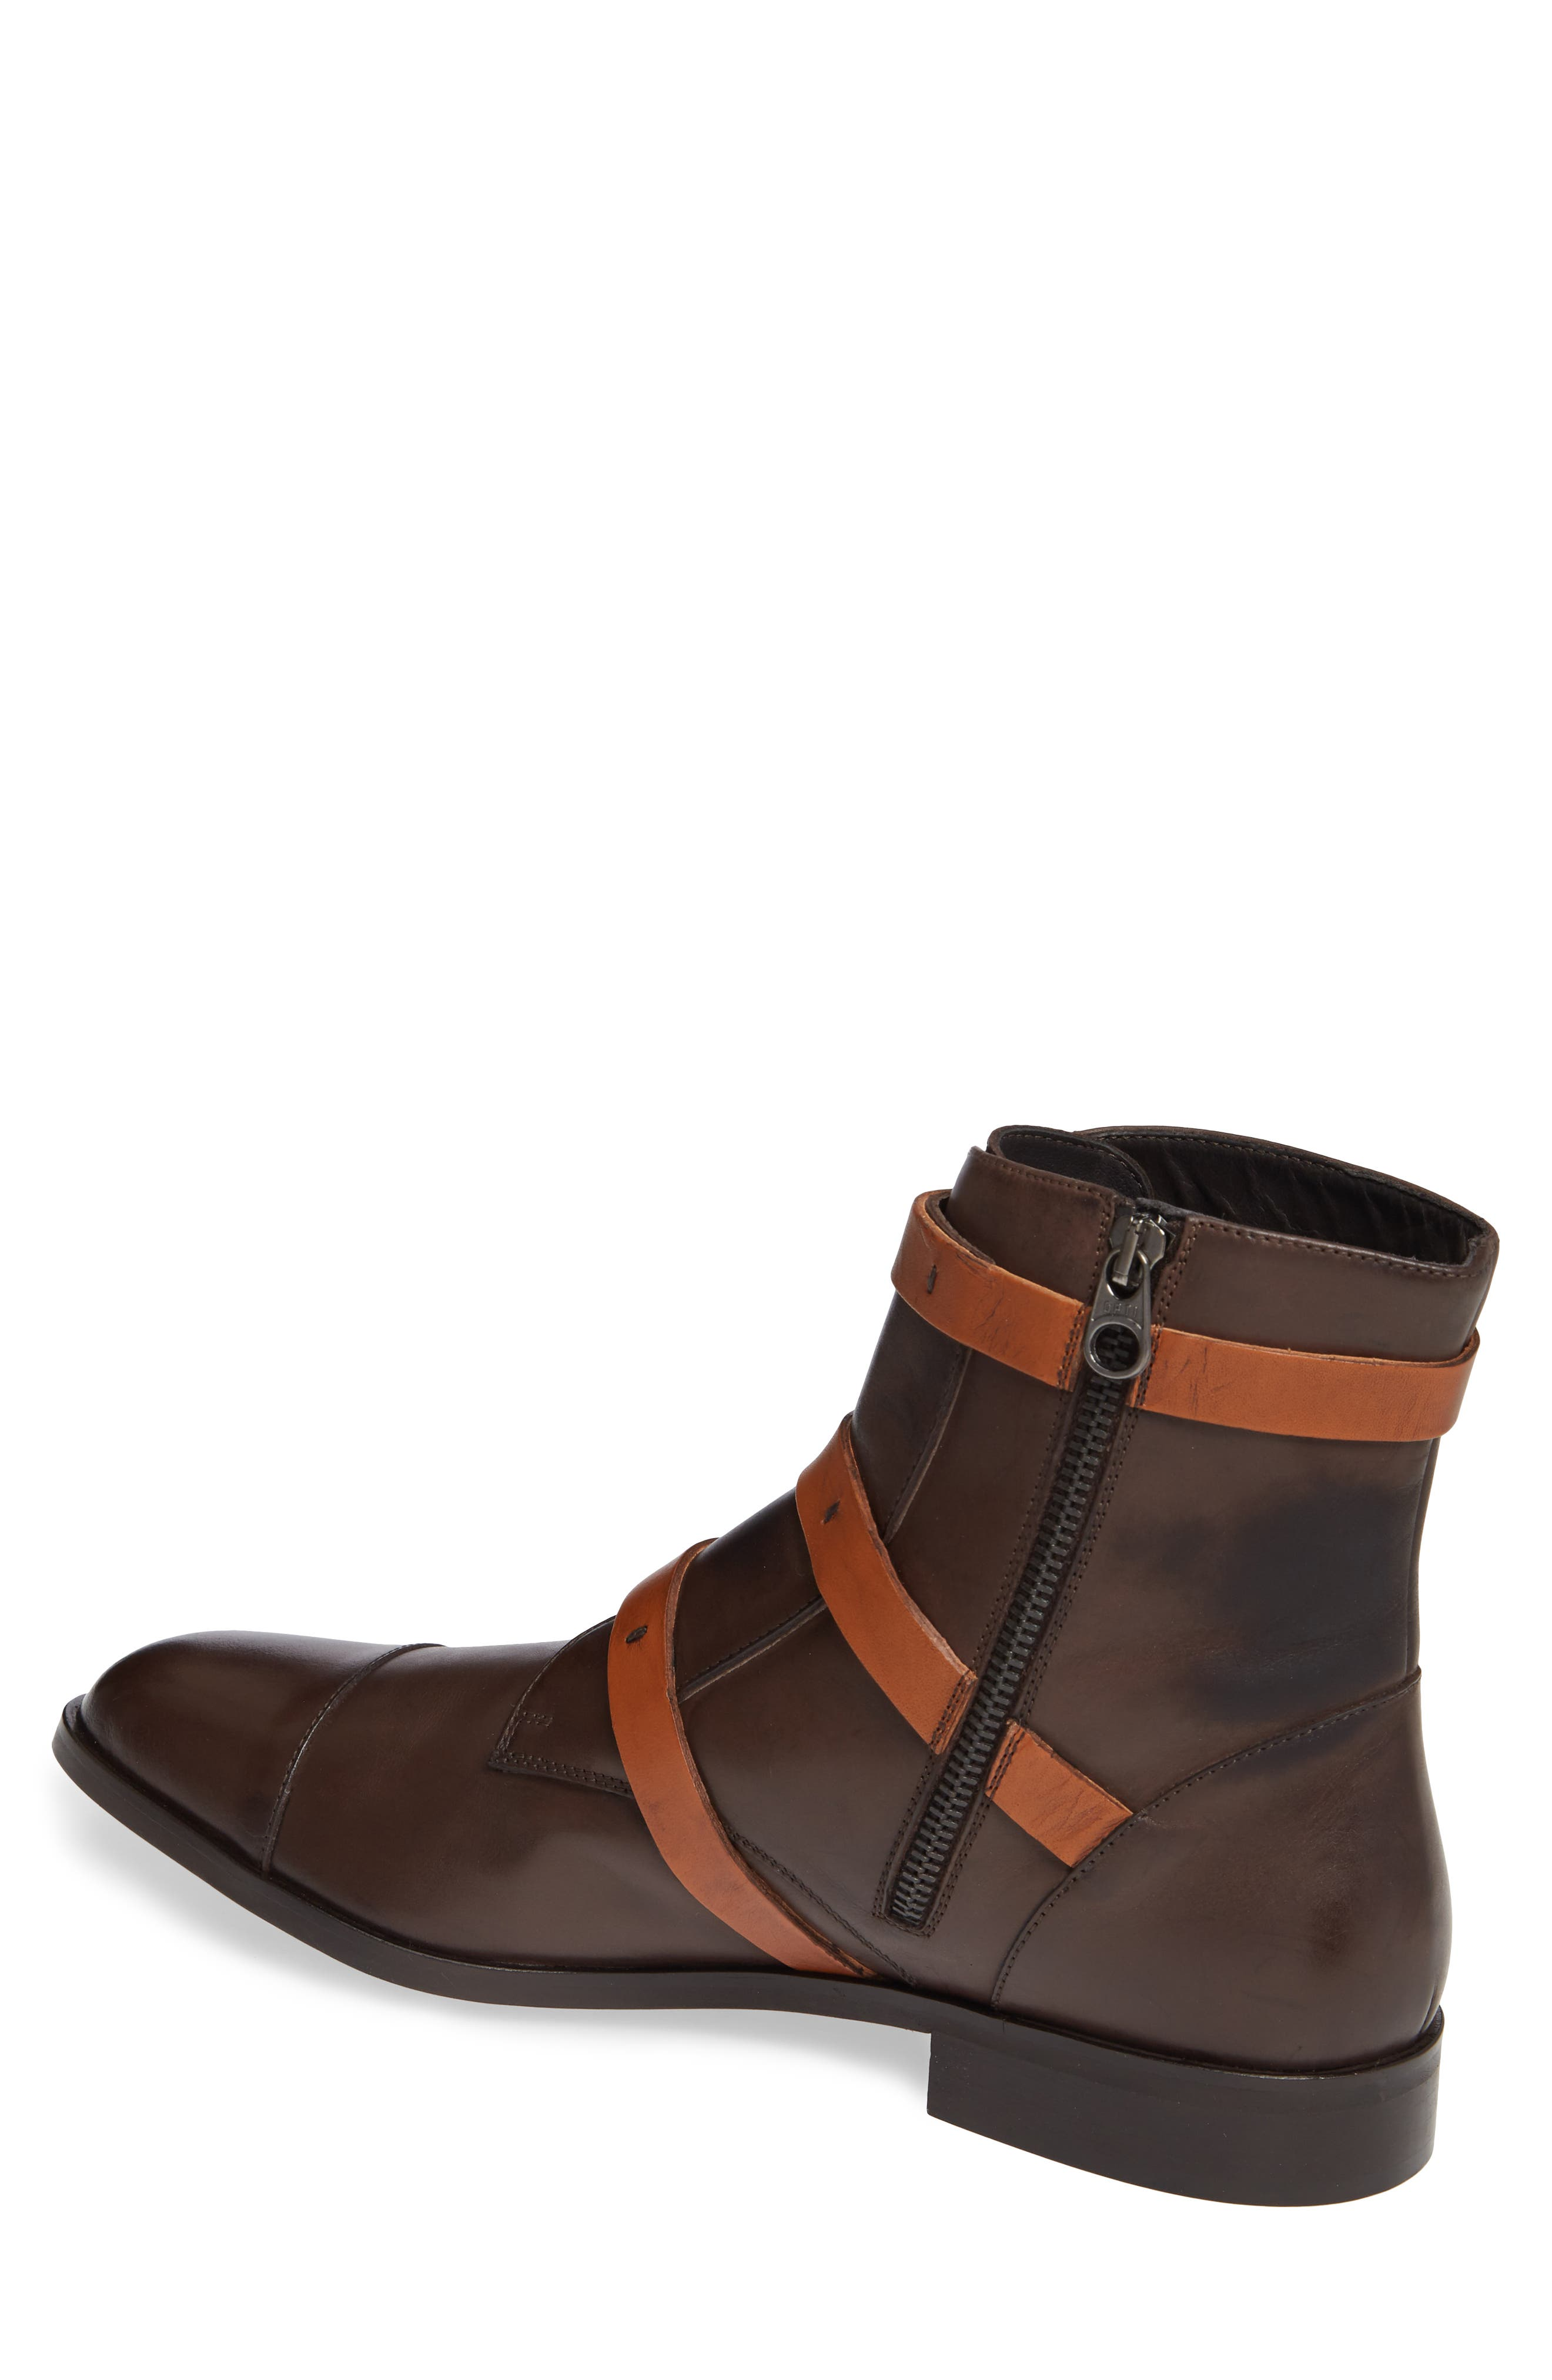 DONALD PLINER,                             Martino Buckle Strap Boot,                             Alternate thumbnail 2, color,                             205